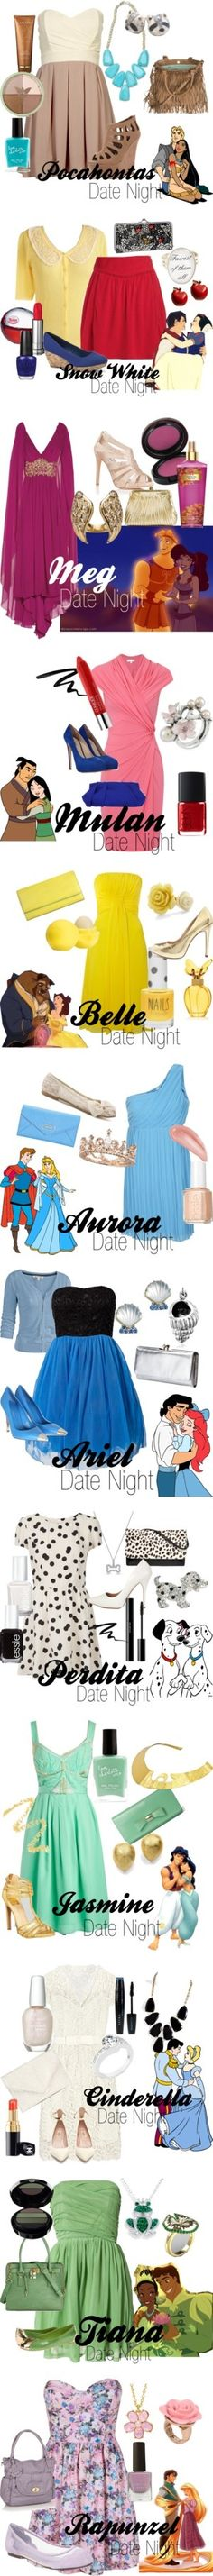 """Disney Date Night"" by amarie104 on Polyvore"